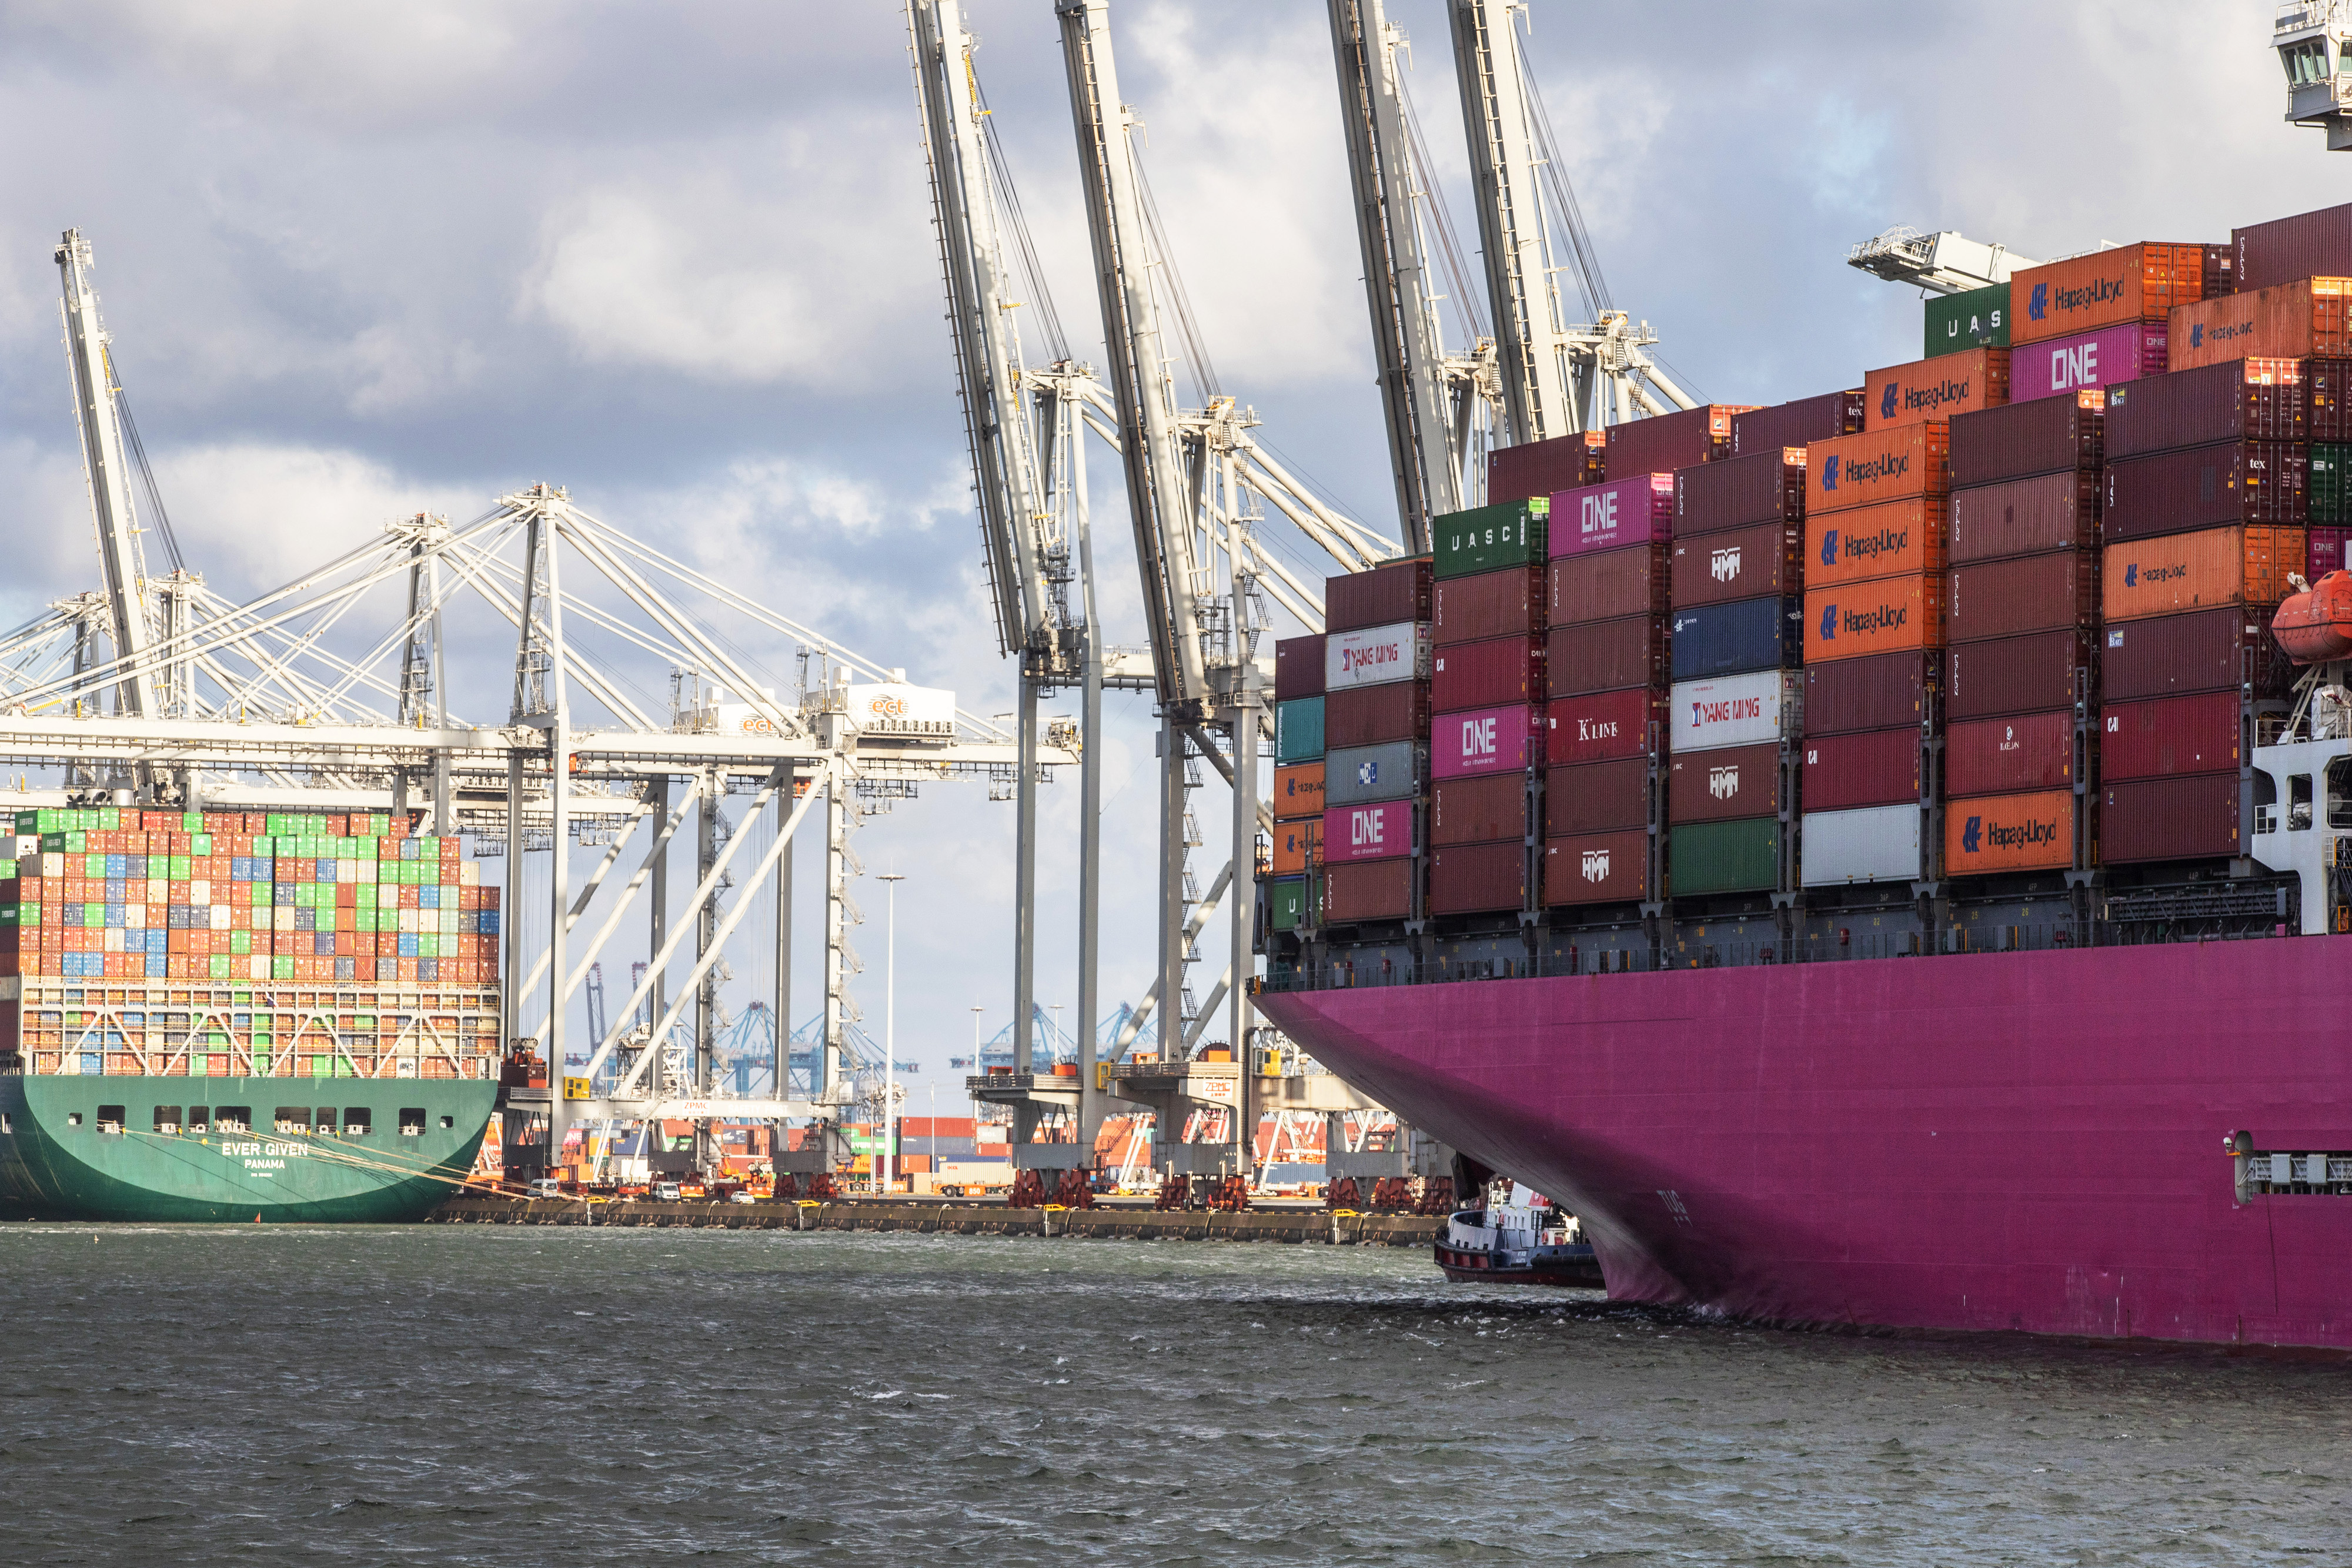 A container ship docked near the One Ibis cargo vessel at a port in Rotterdam, Netherlands.